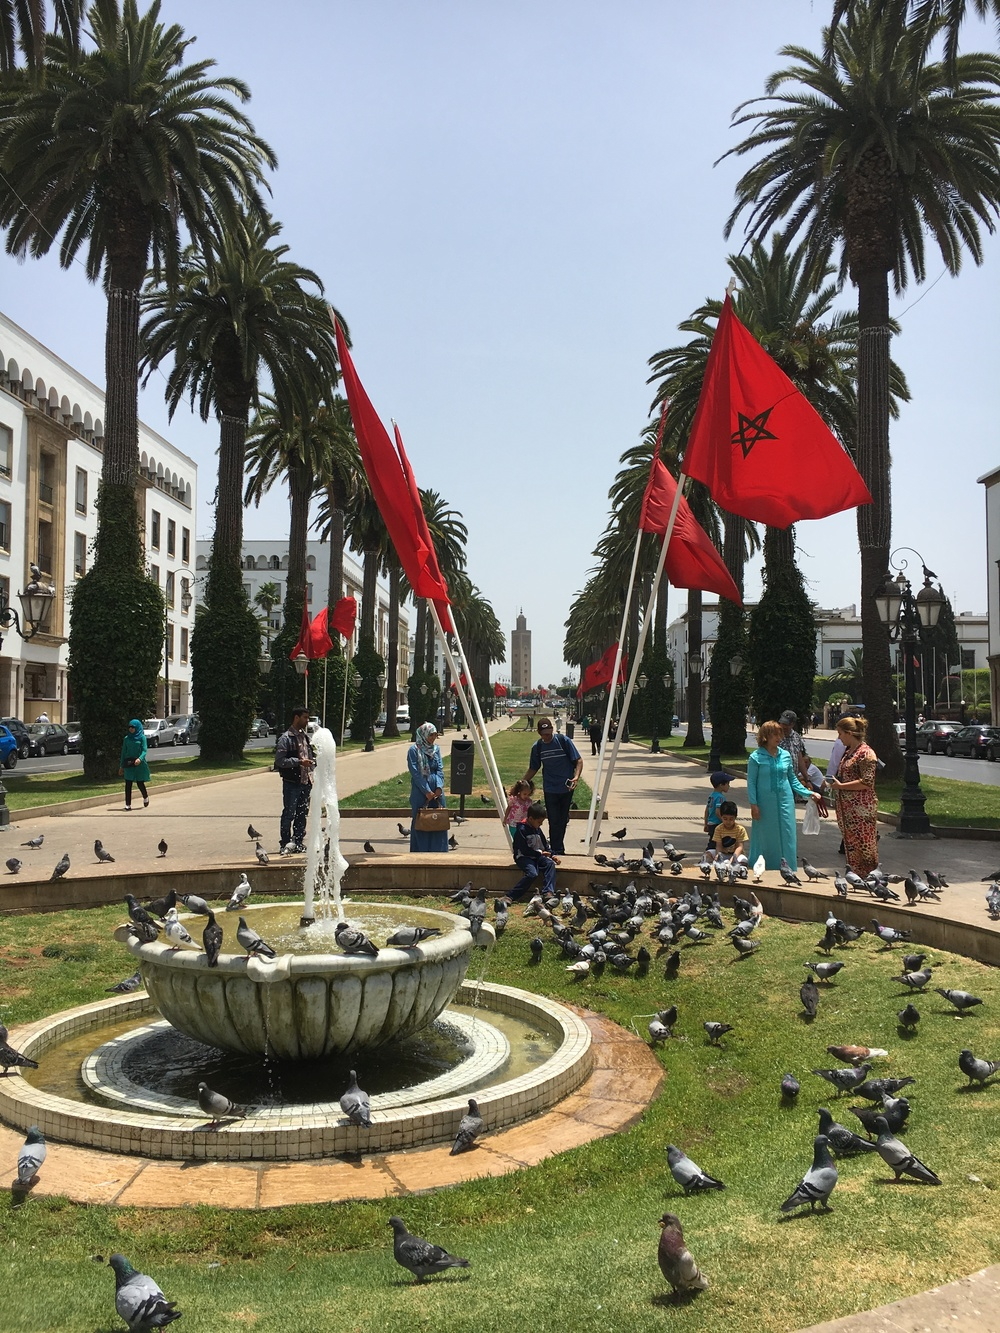 rabat is the capitol of morocco, so it's the center of all things governmental (and pretty!)